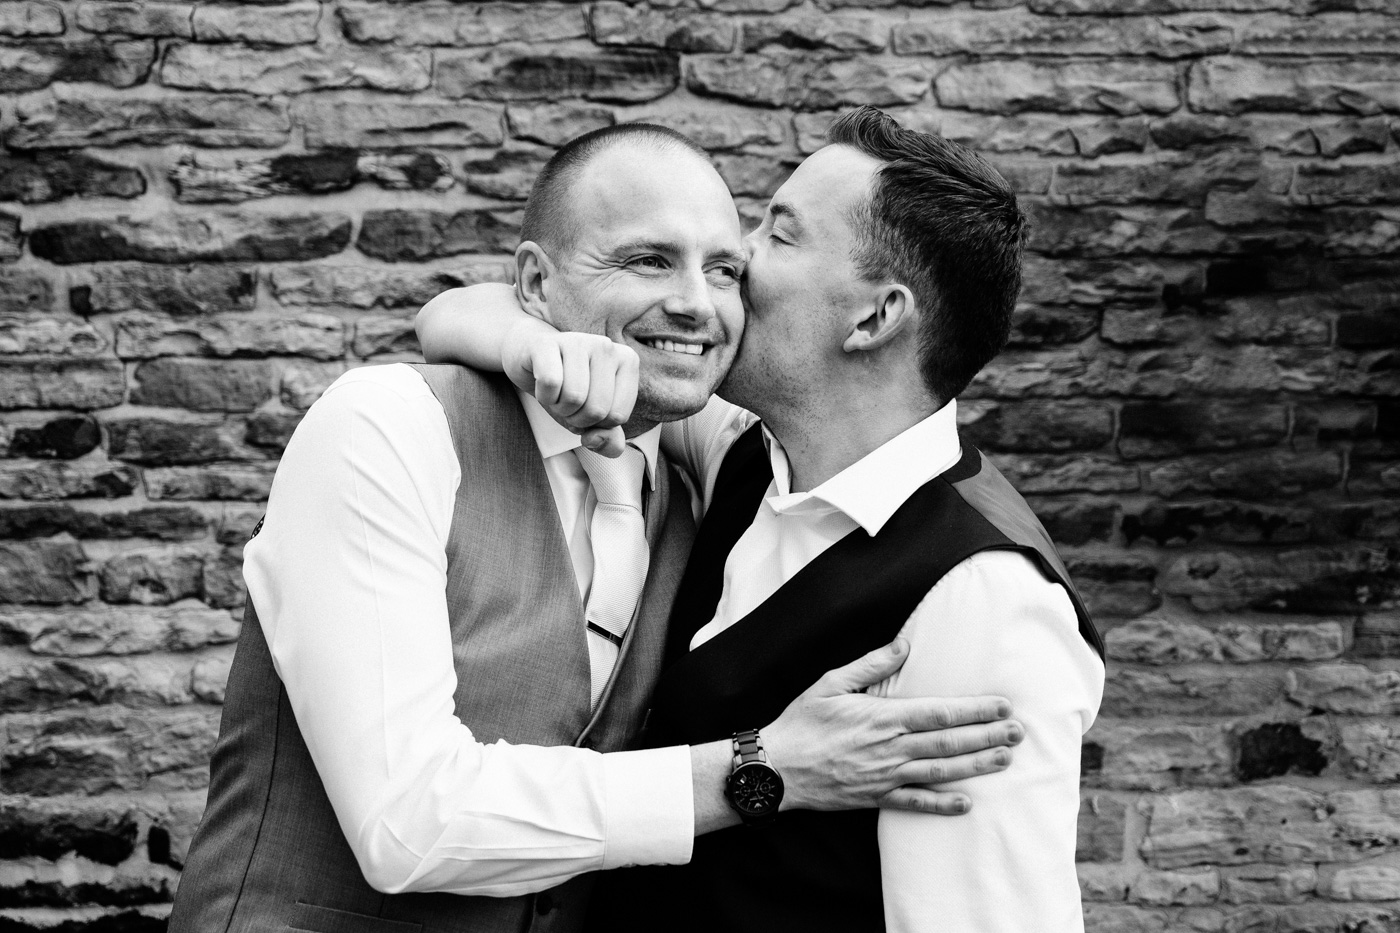 Image of groom and best man hugging at wedding